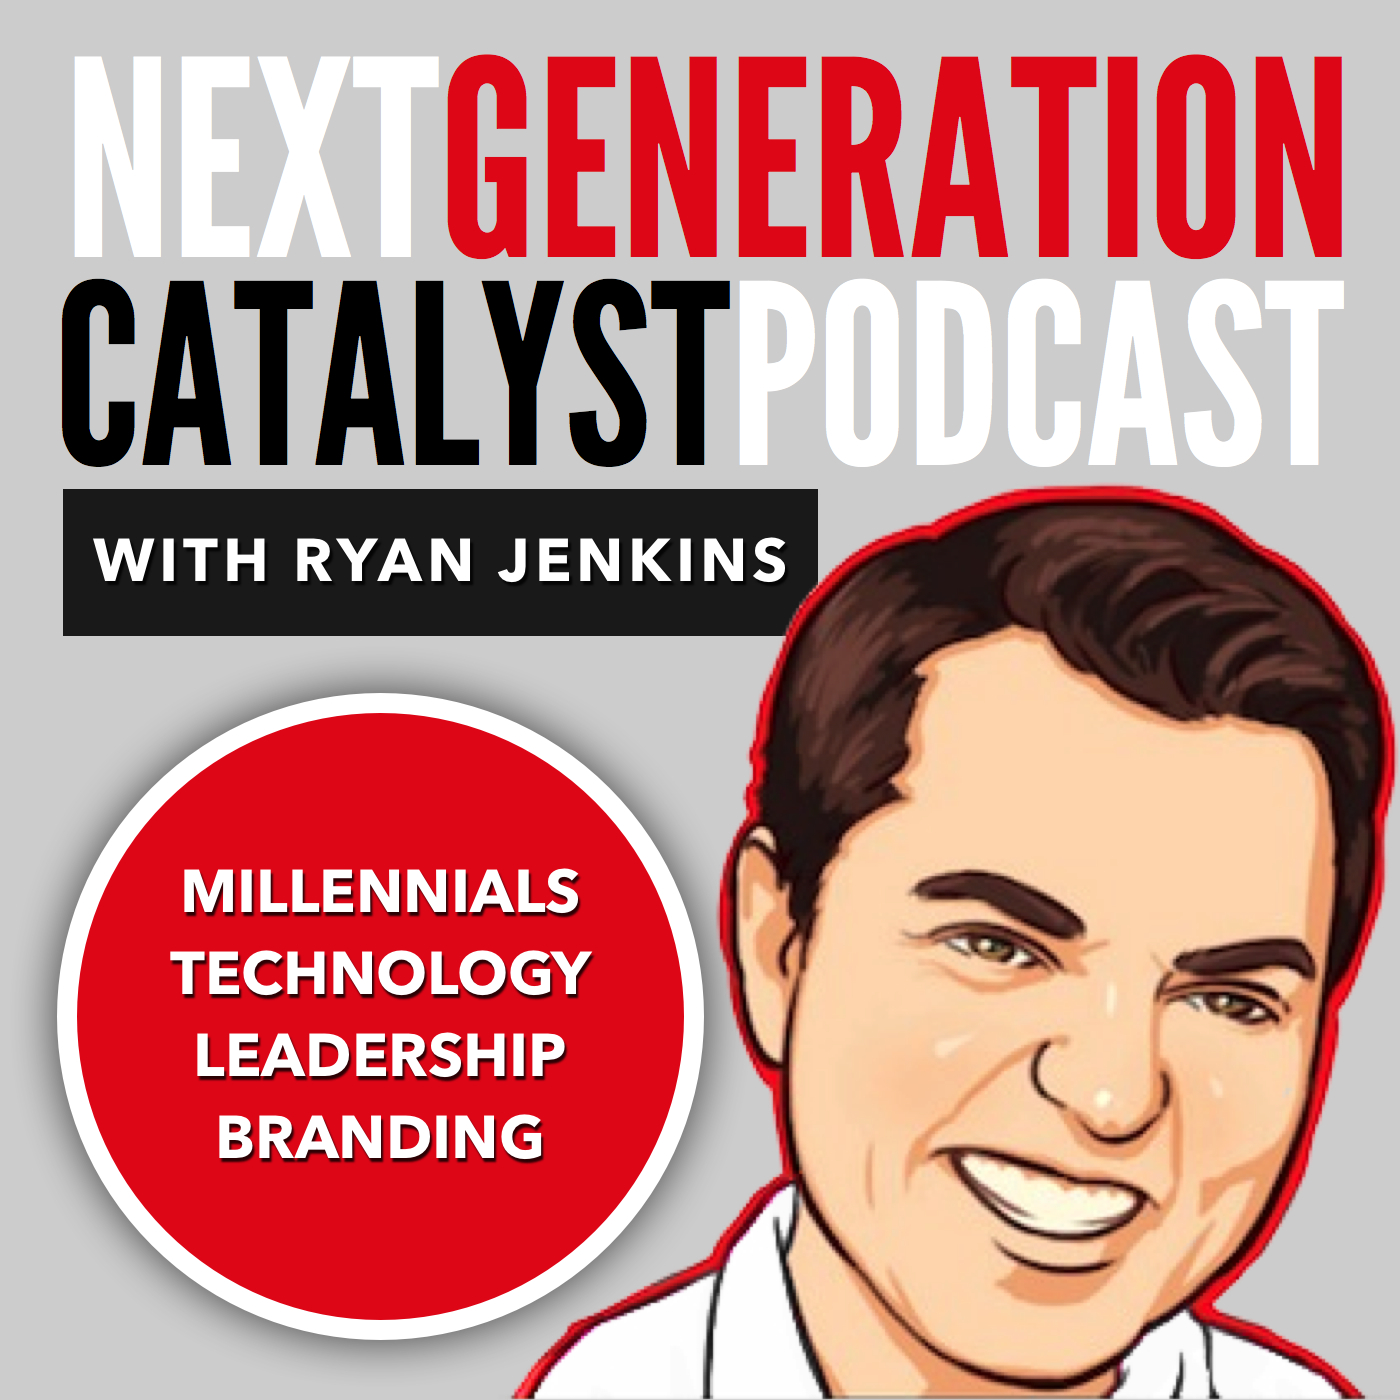 Next Generation Catalyst Podcast: Millennials / Technology / Leadership / Branding